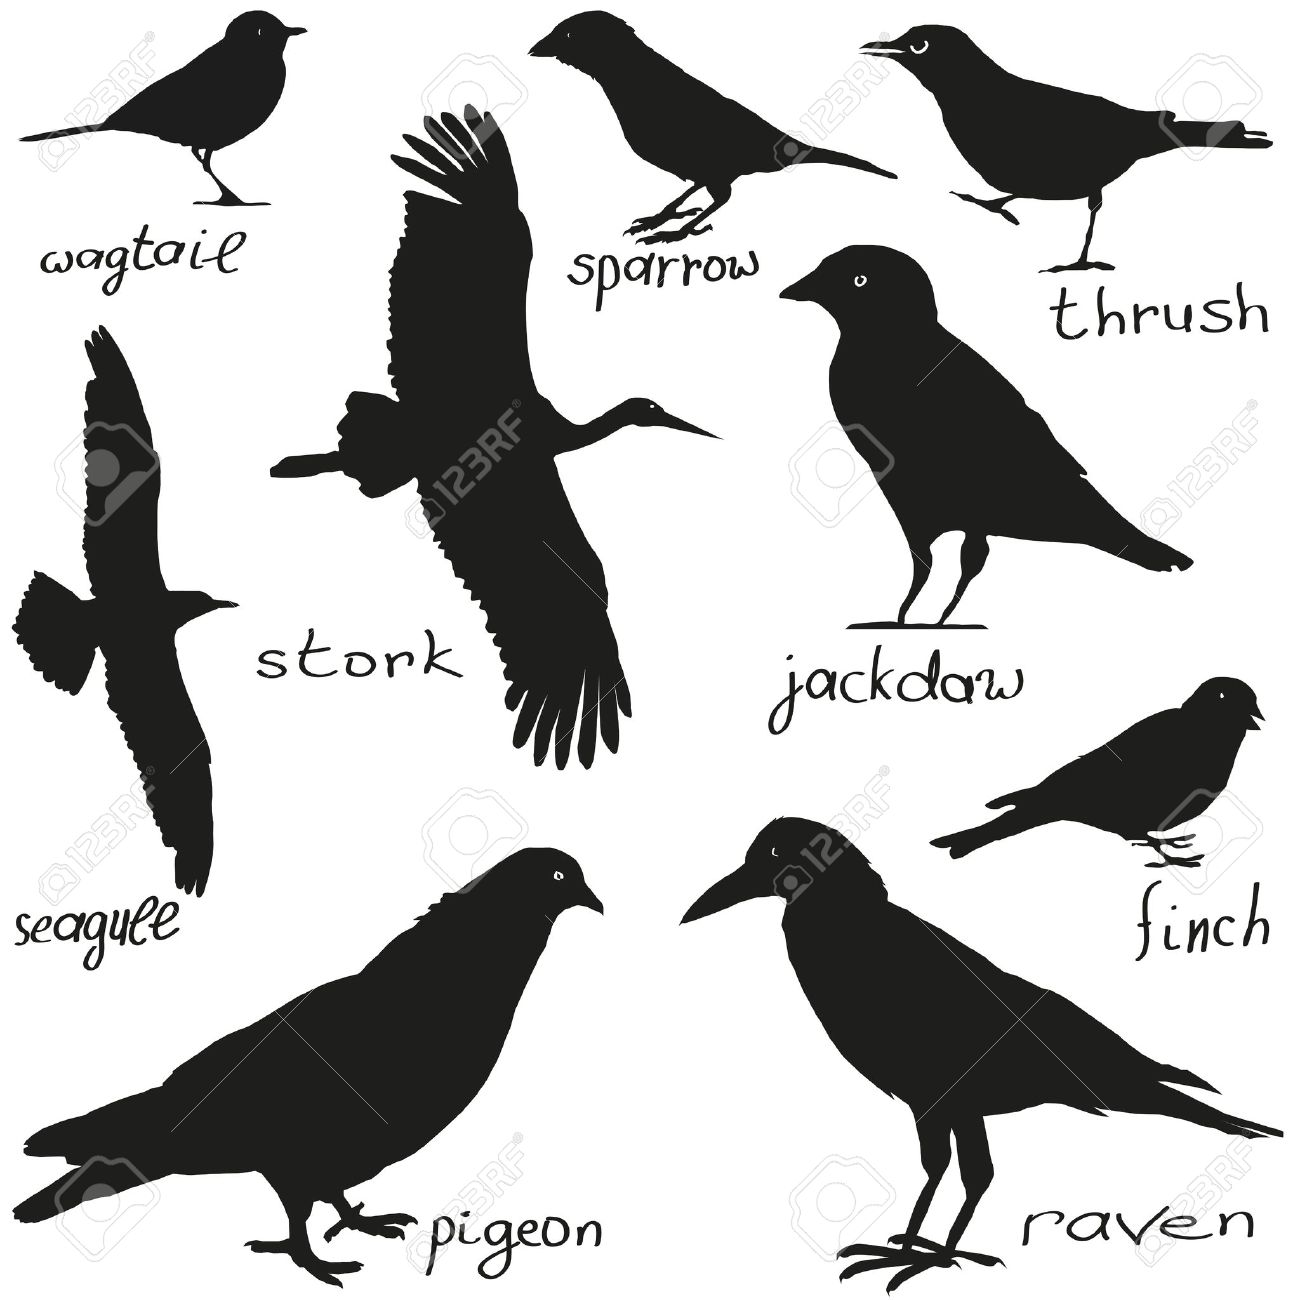 a set of silhouettes of different birds in black royalty free